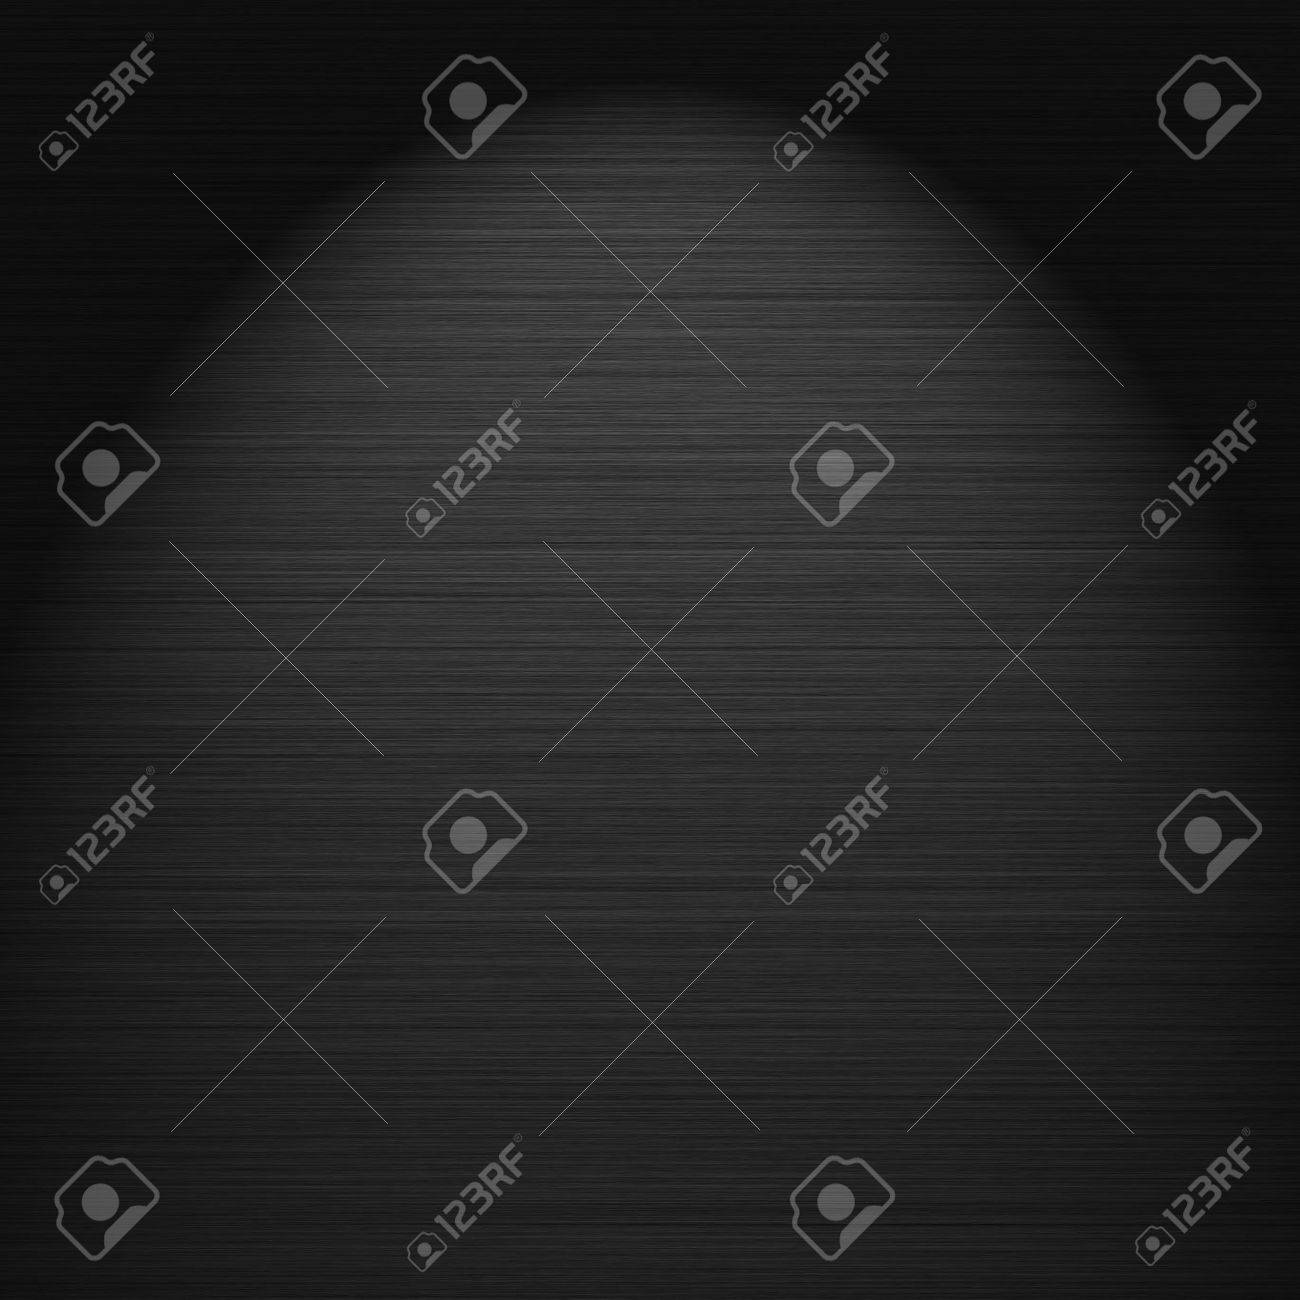 Black scratched grunge wall background or texture Stock Photo - 18518837